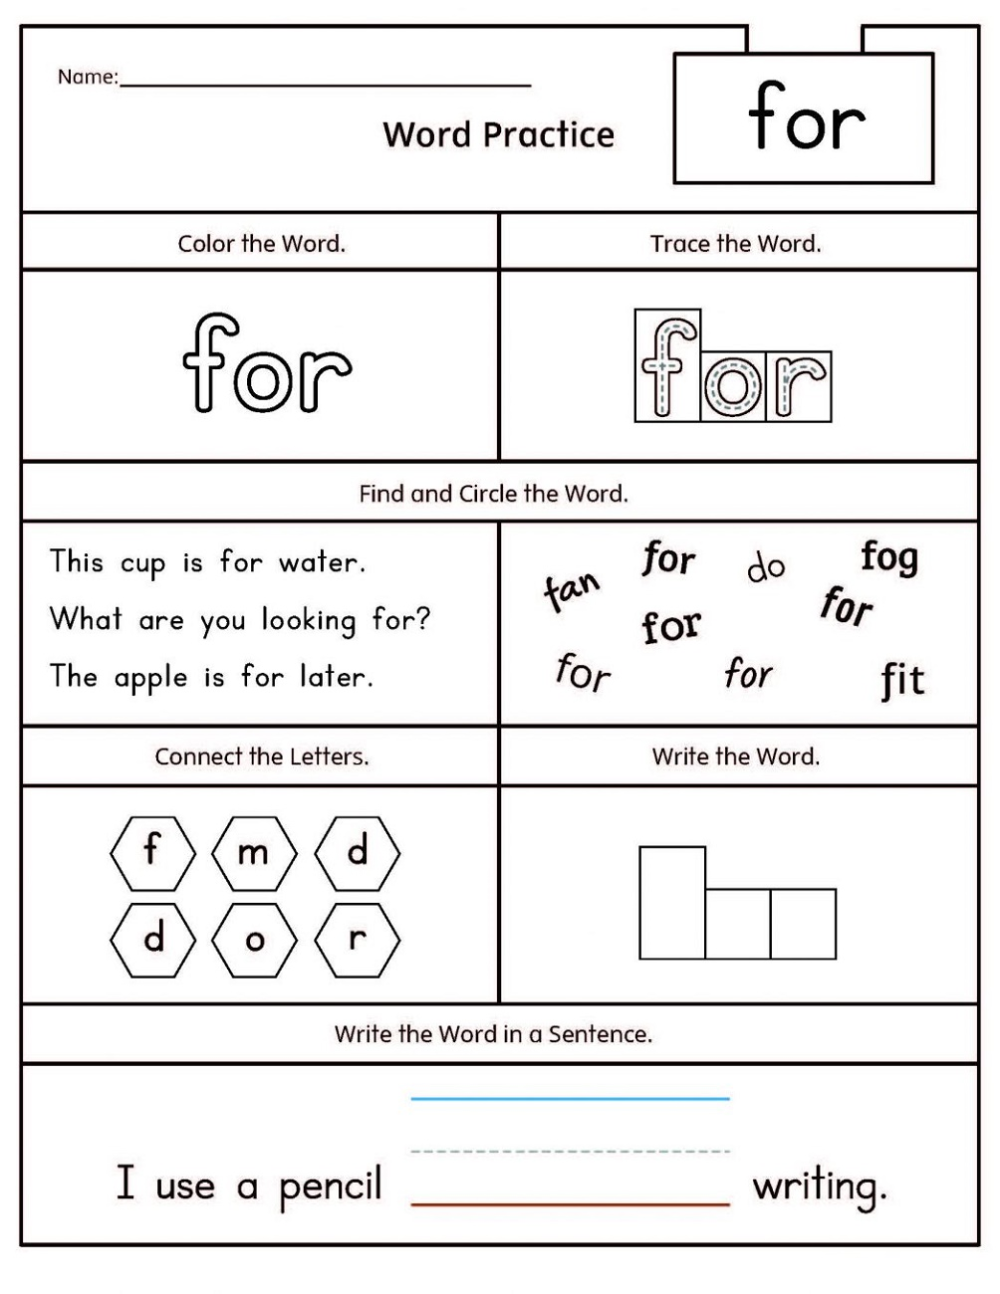 Free Literacy Worksheets K5 Worksheets Sight Words Kindergarten Kindergarten Worksheets Sight Words Tricky Words [ 1294 x 1000 Pixel ]